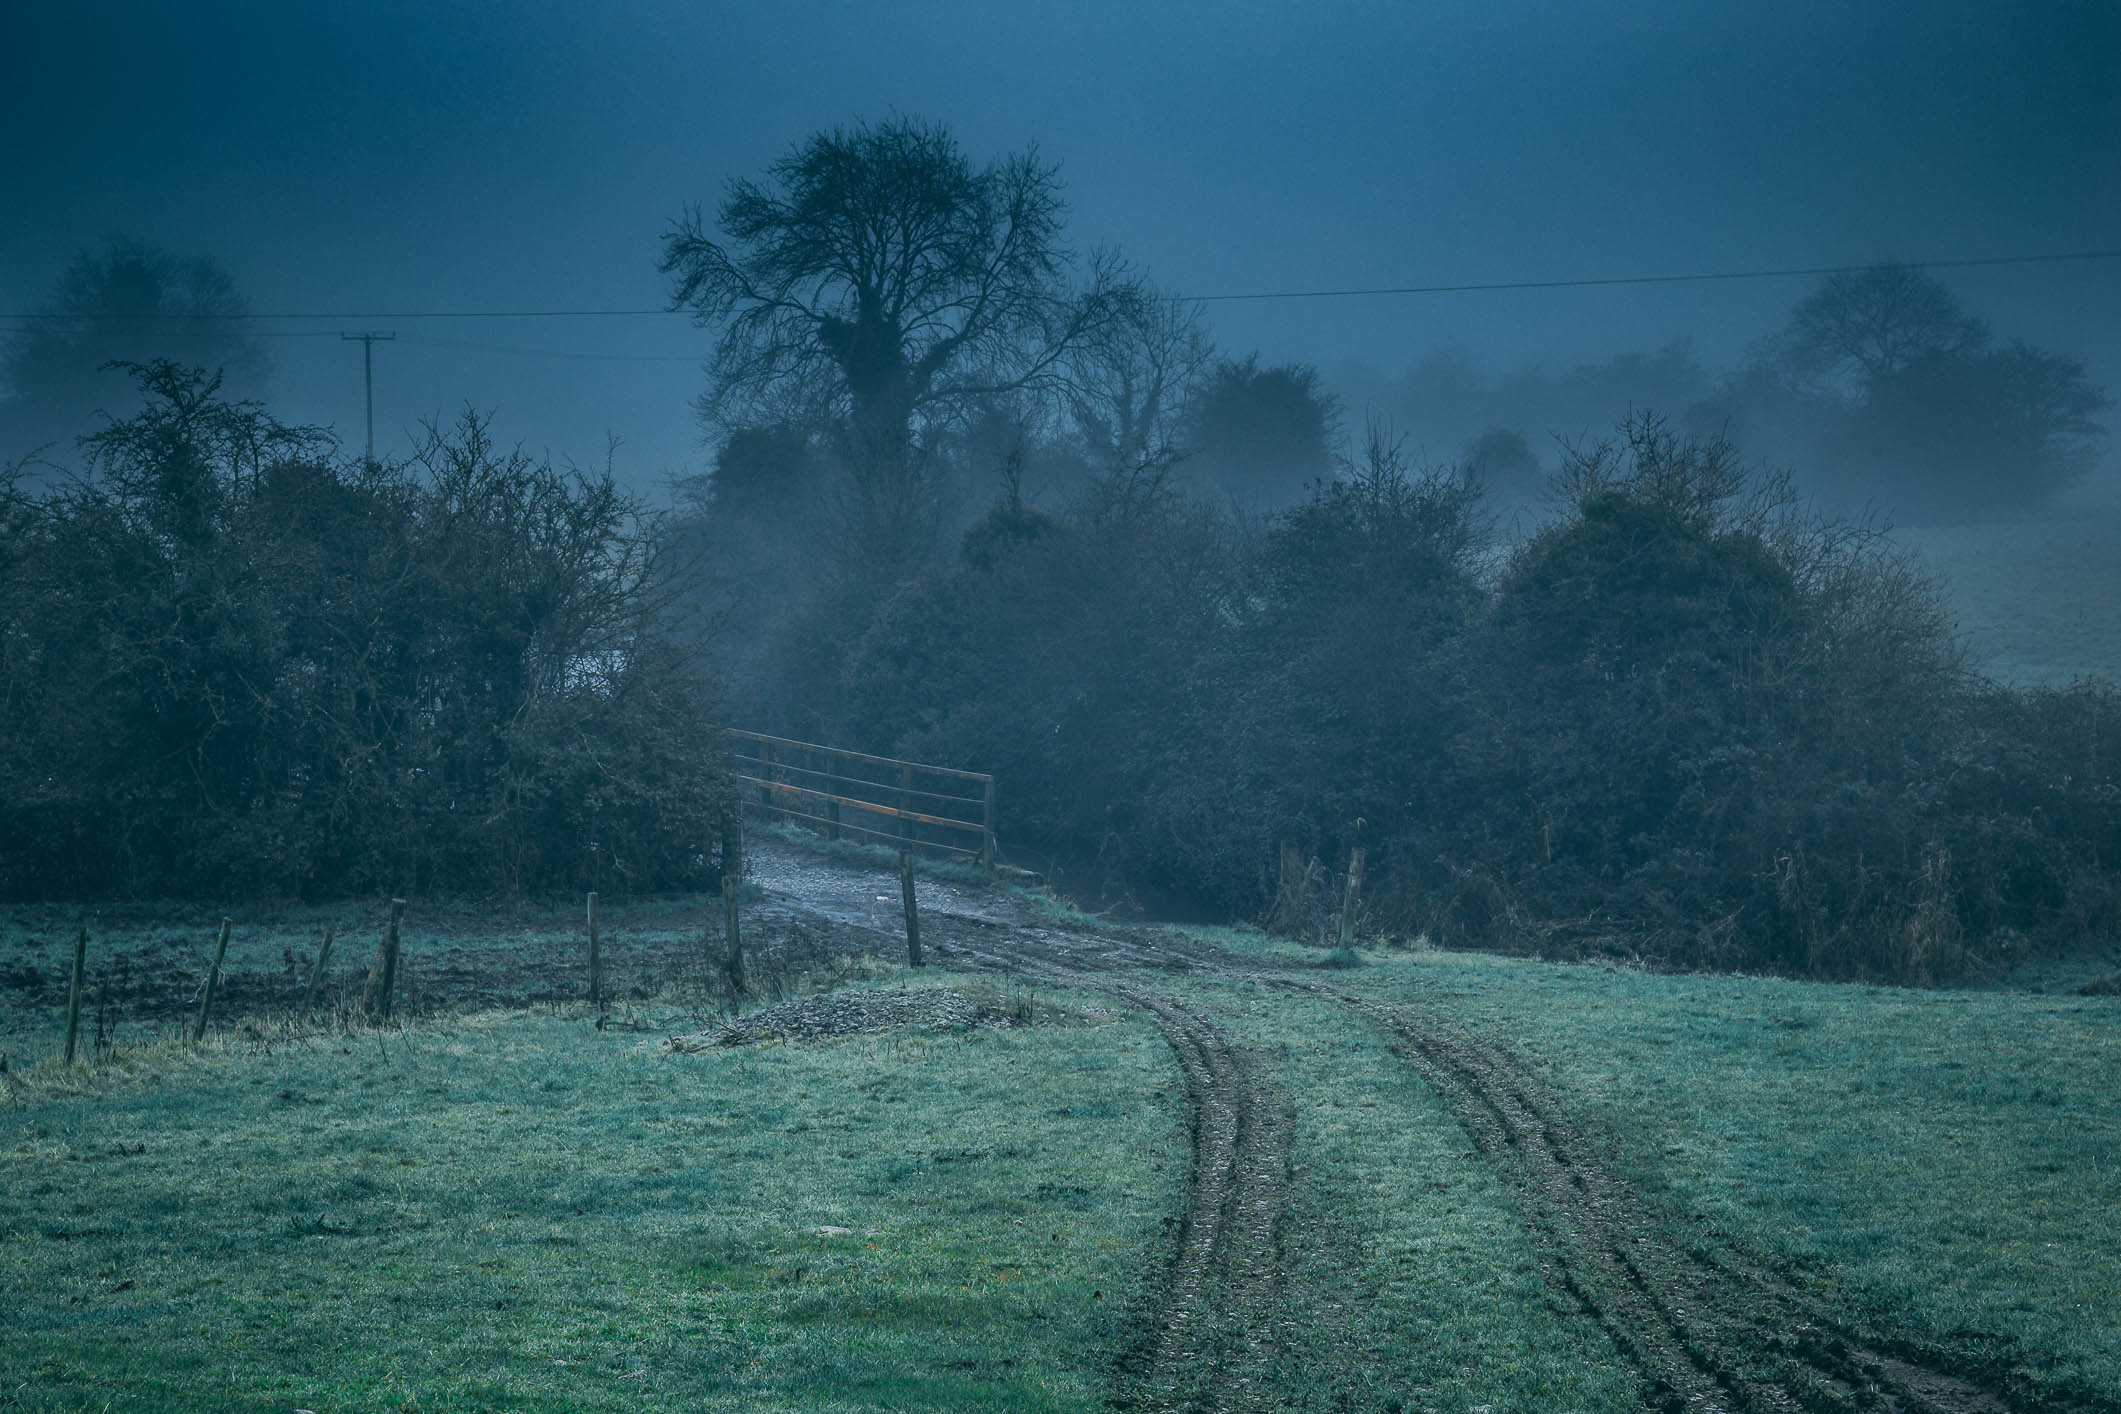 Cart tracks in Mist (1 of 1).jpg